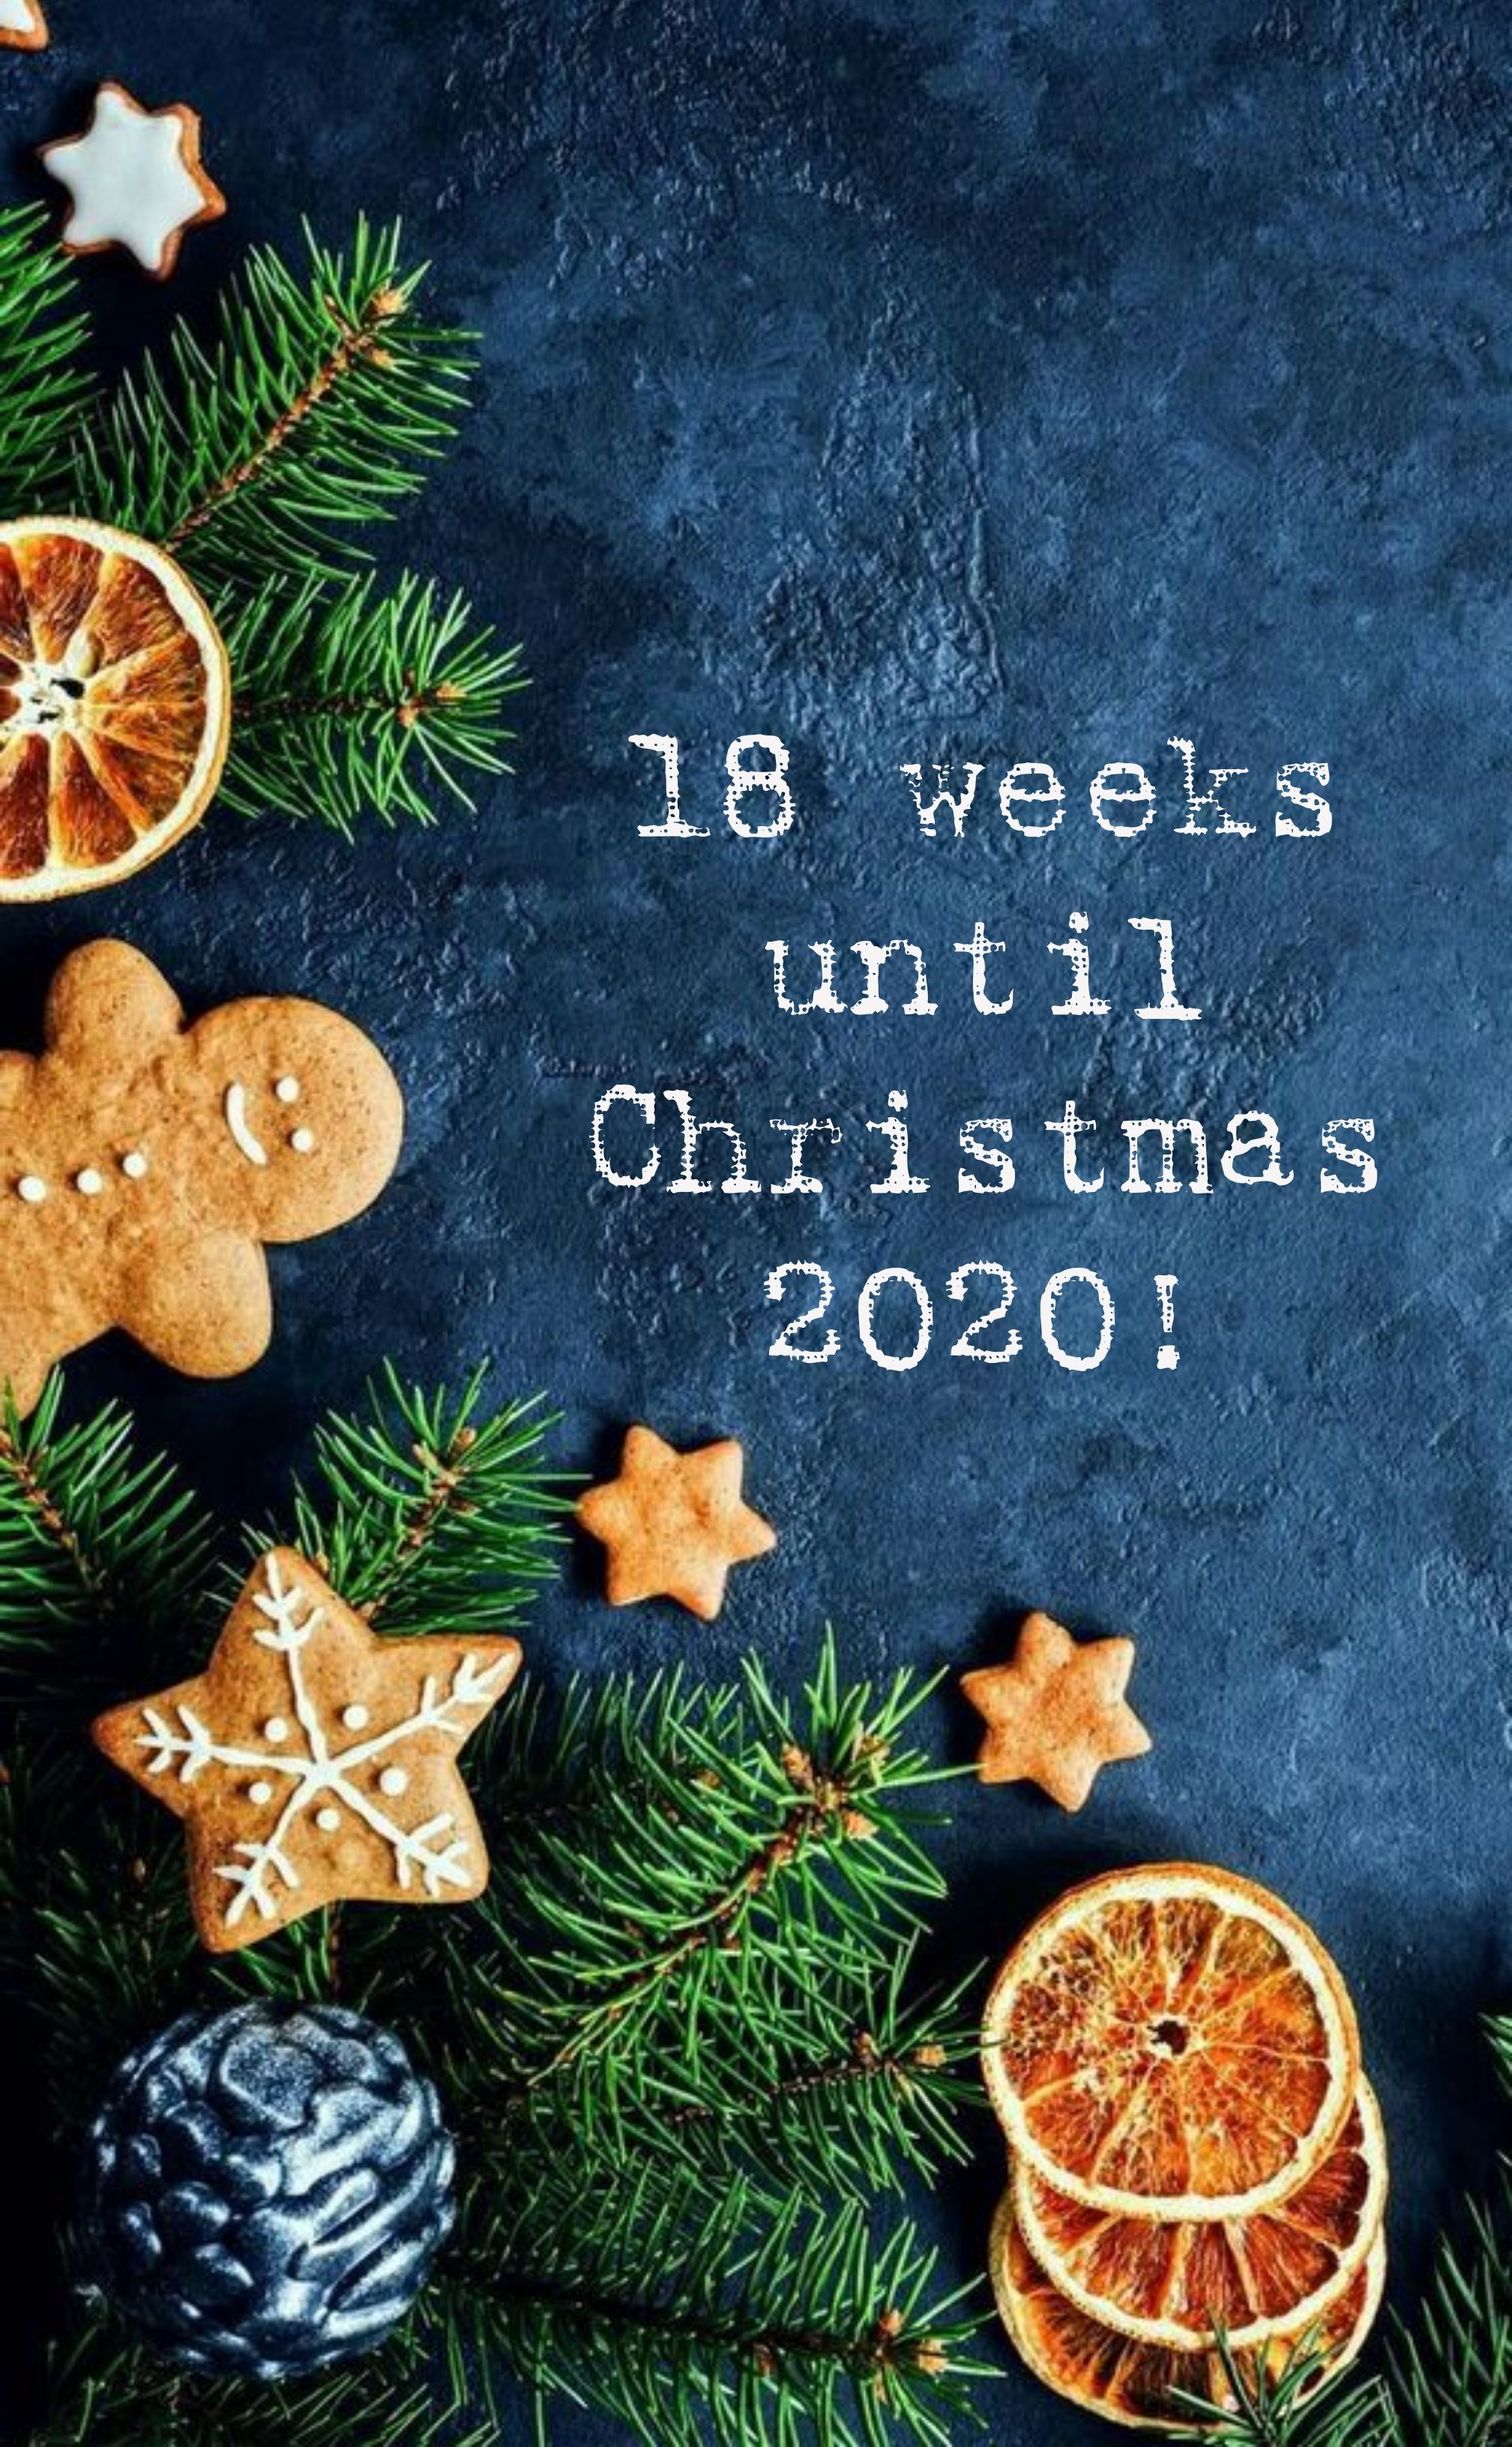 Fabric With Count Down For Christmas 2020